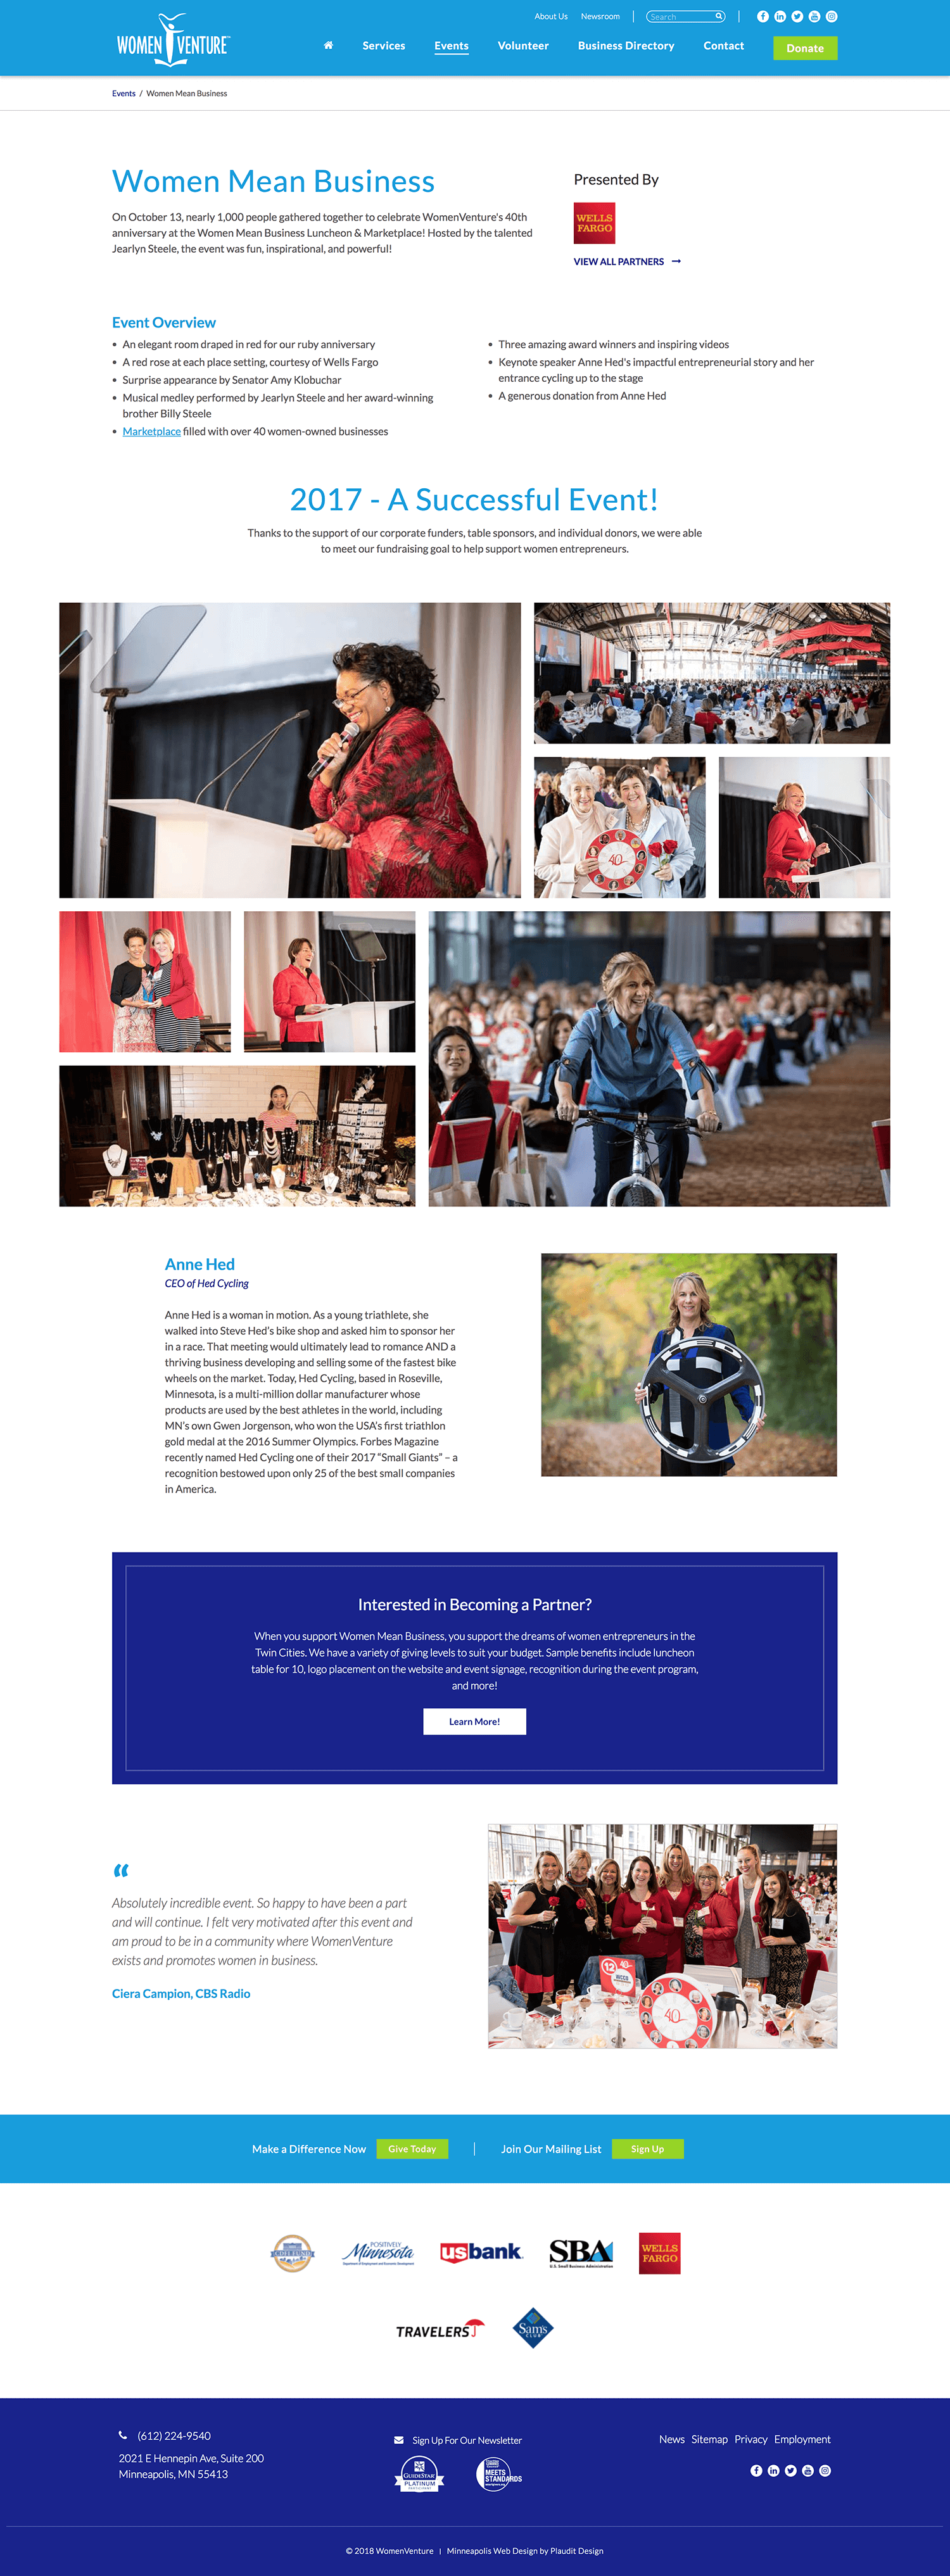 Web Design for WomenVenture: Individual Event Page